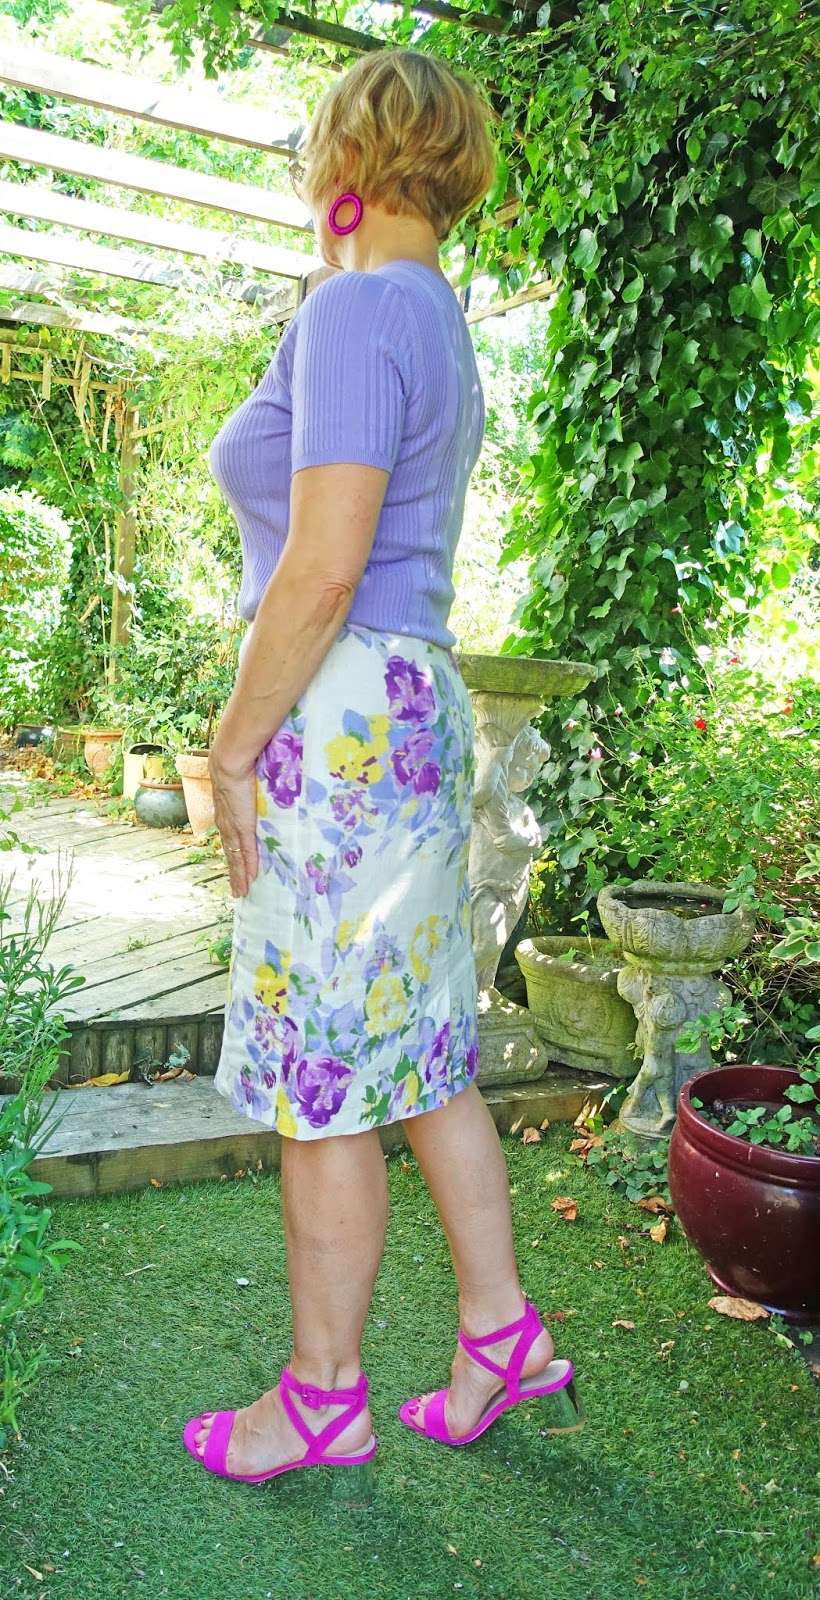 Lilac floral skirt worn with a lilac top and pink sandals